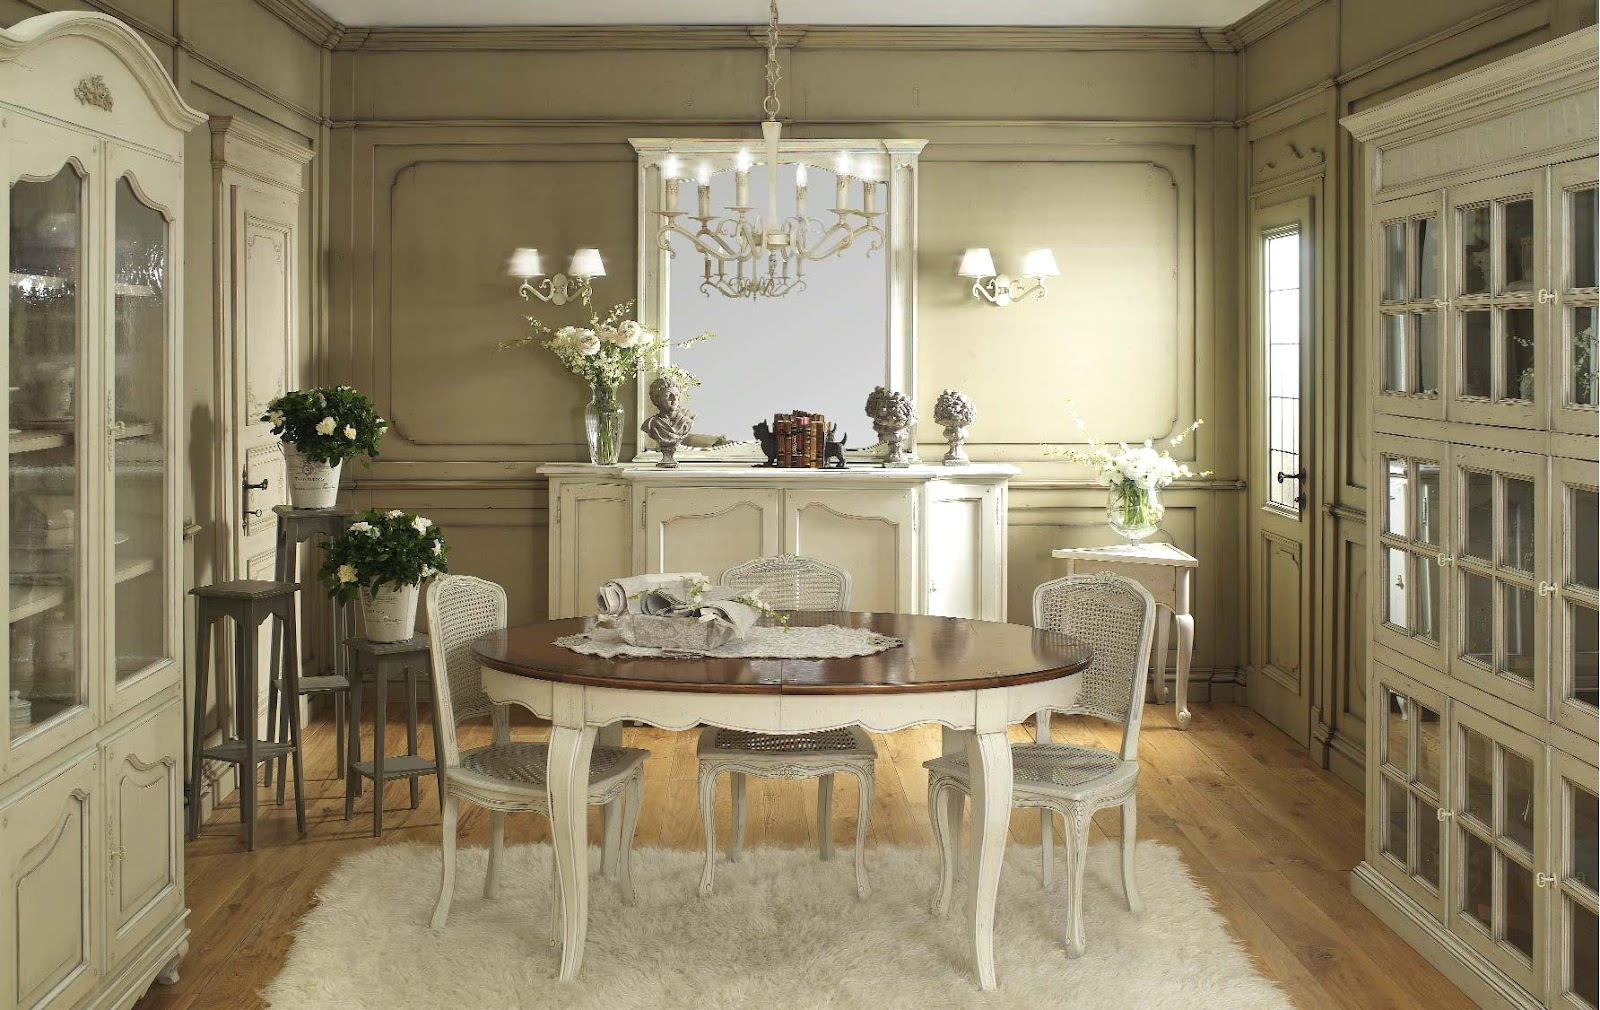 How To Use Area Rugs In Interior Decorating CraftOManiac - Dining room rug ideas